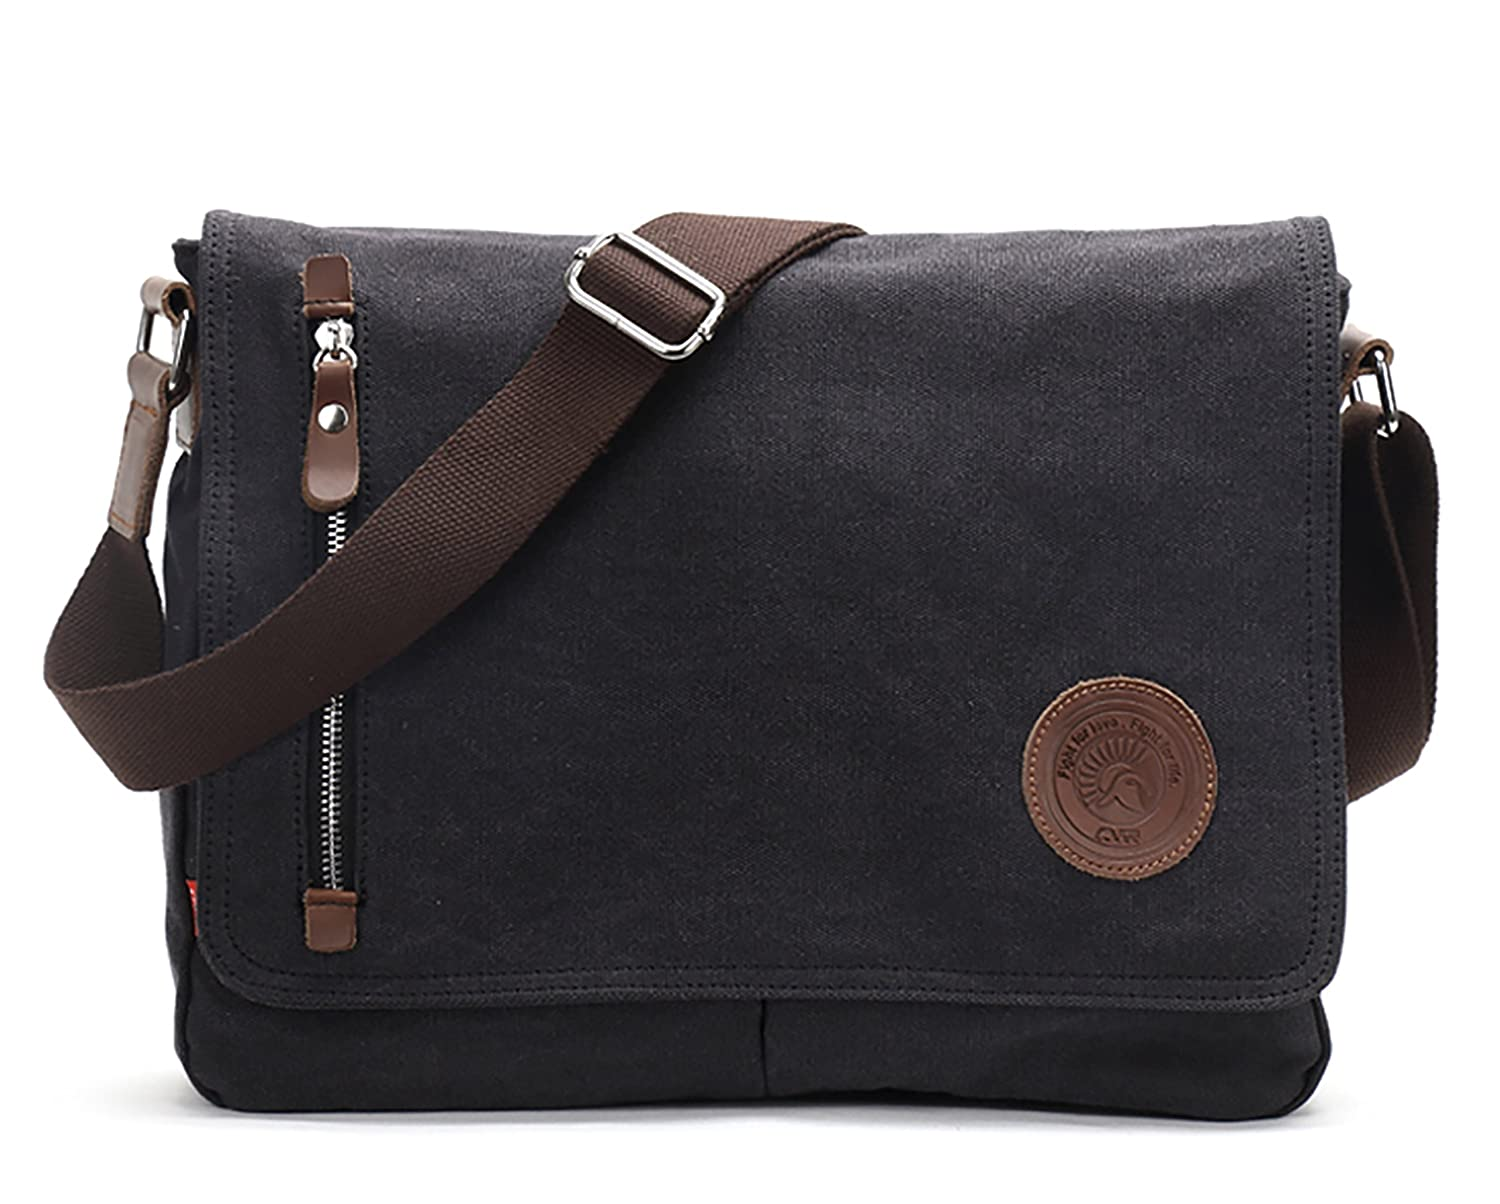 Vintage Men s Canvas Messenger Bag Laptop Shoulder Satchel Crossbody Sling Bookbag School Bag M36_Black